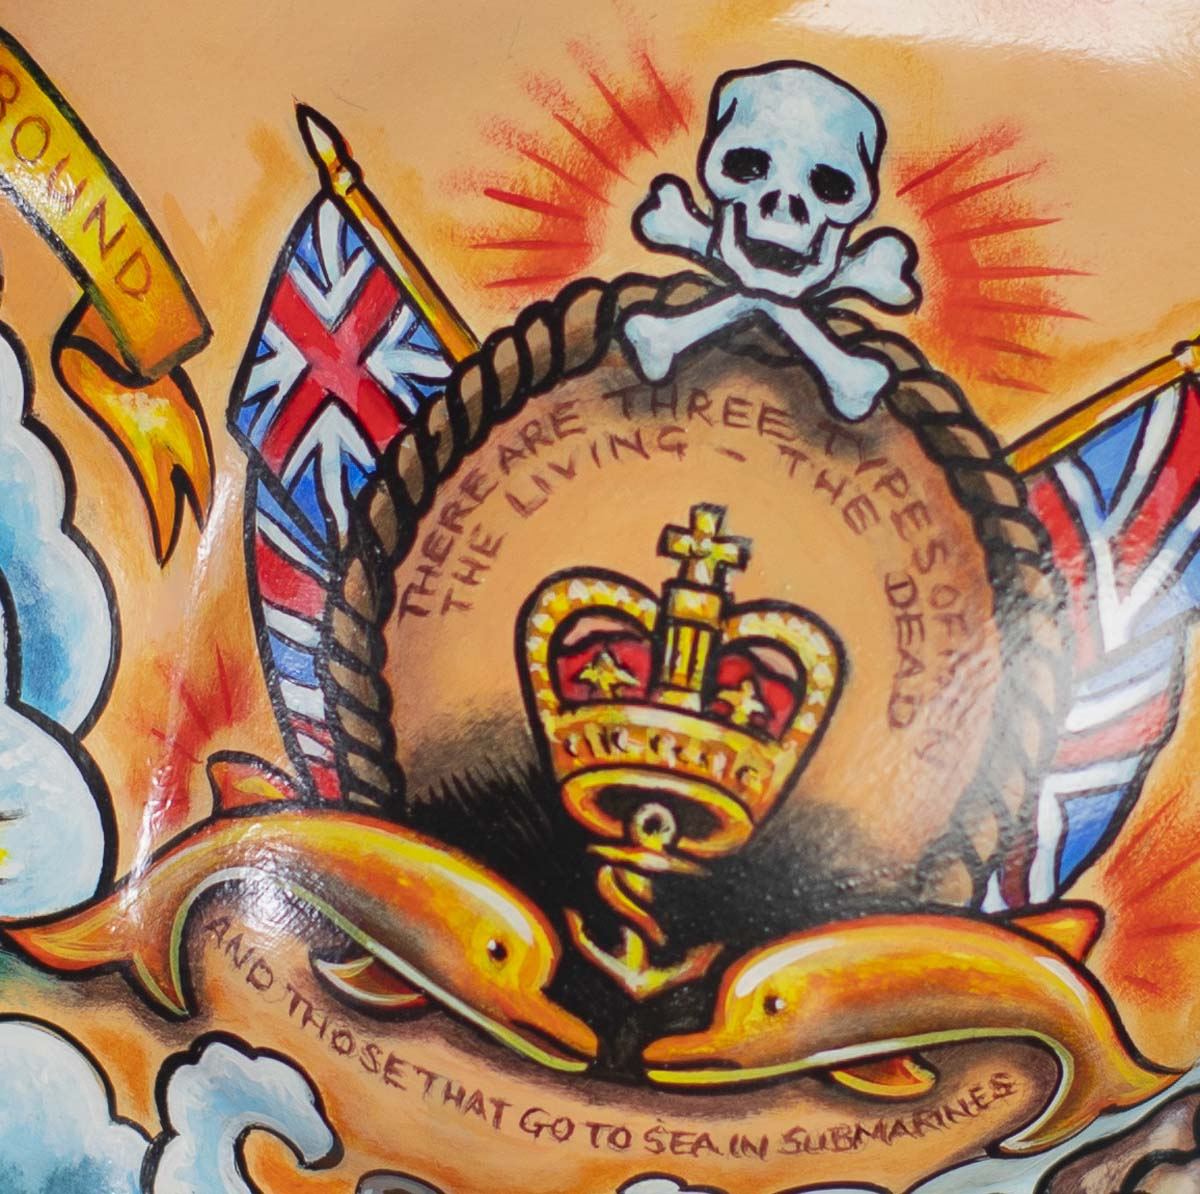 a detail of a tattoo design that says there are three types of man the living, the dead and those that go to sea in submarines